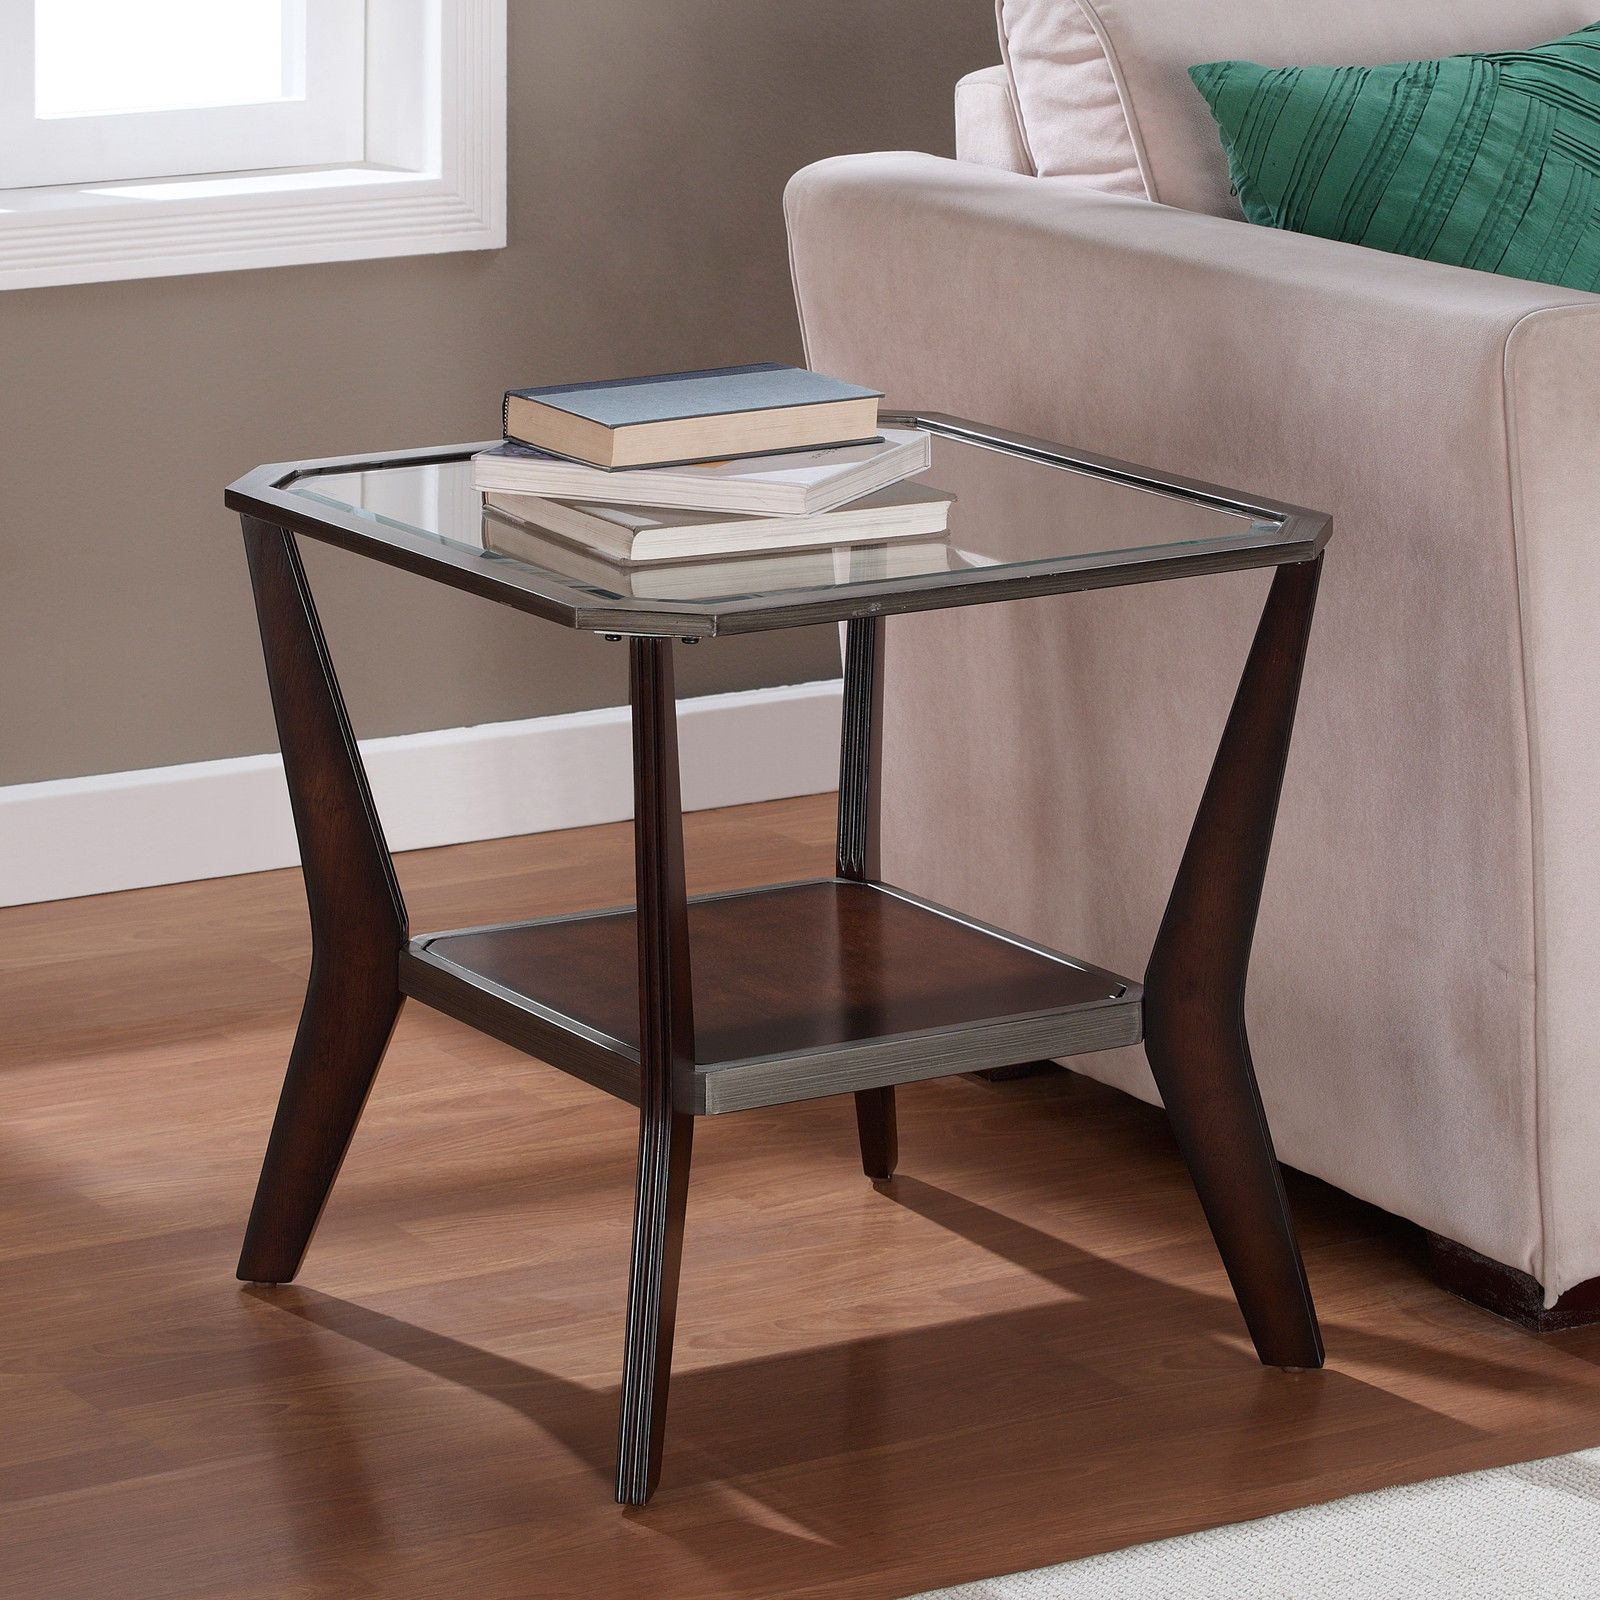 coffee table drawing. Side Table Designs For Drawing Room Coffee T